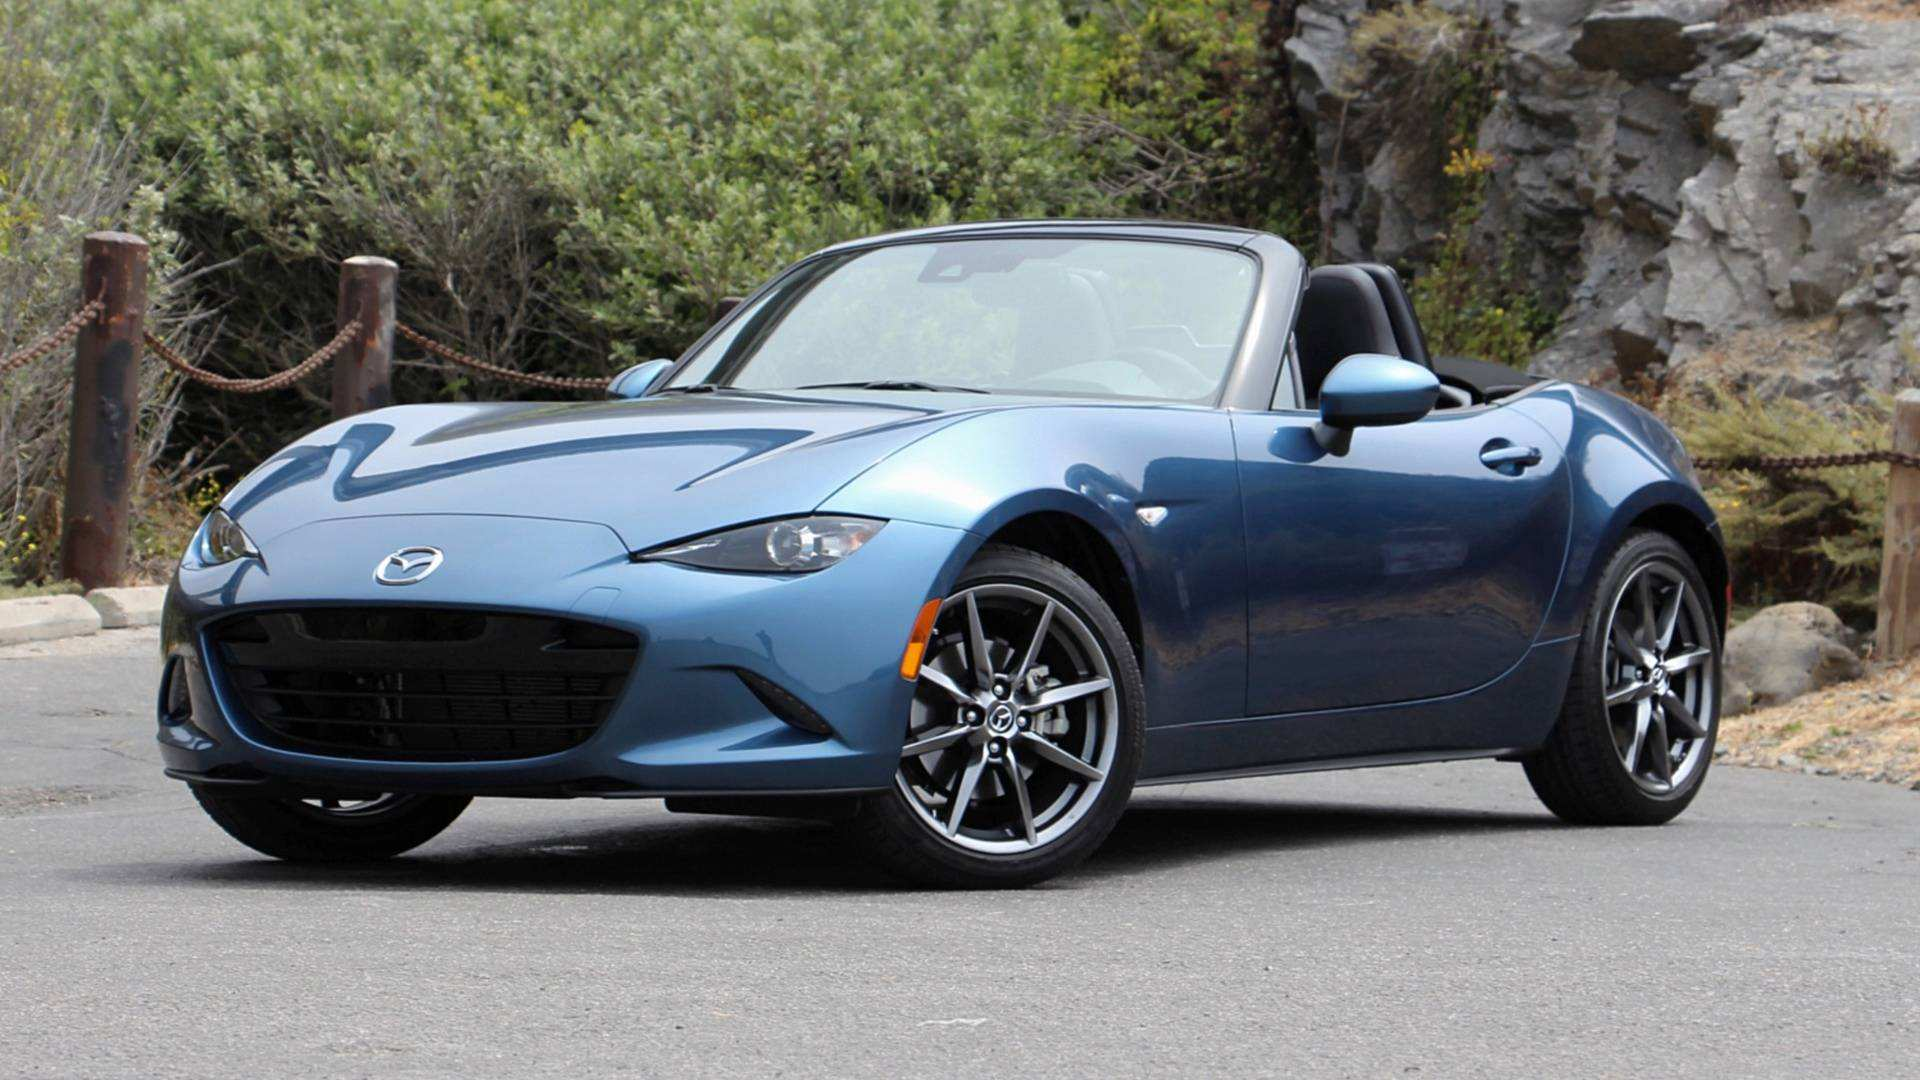 89 The 2019 Mazda MX 5 Miata Exterior And Interior